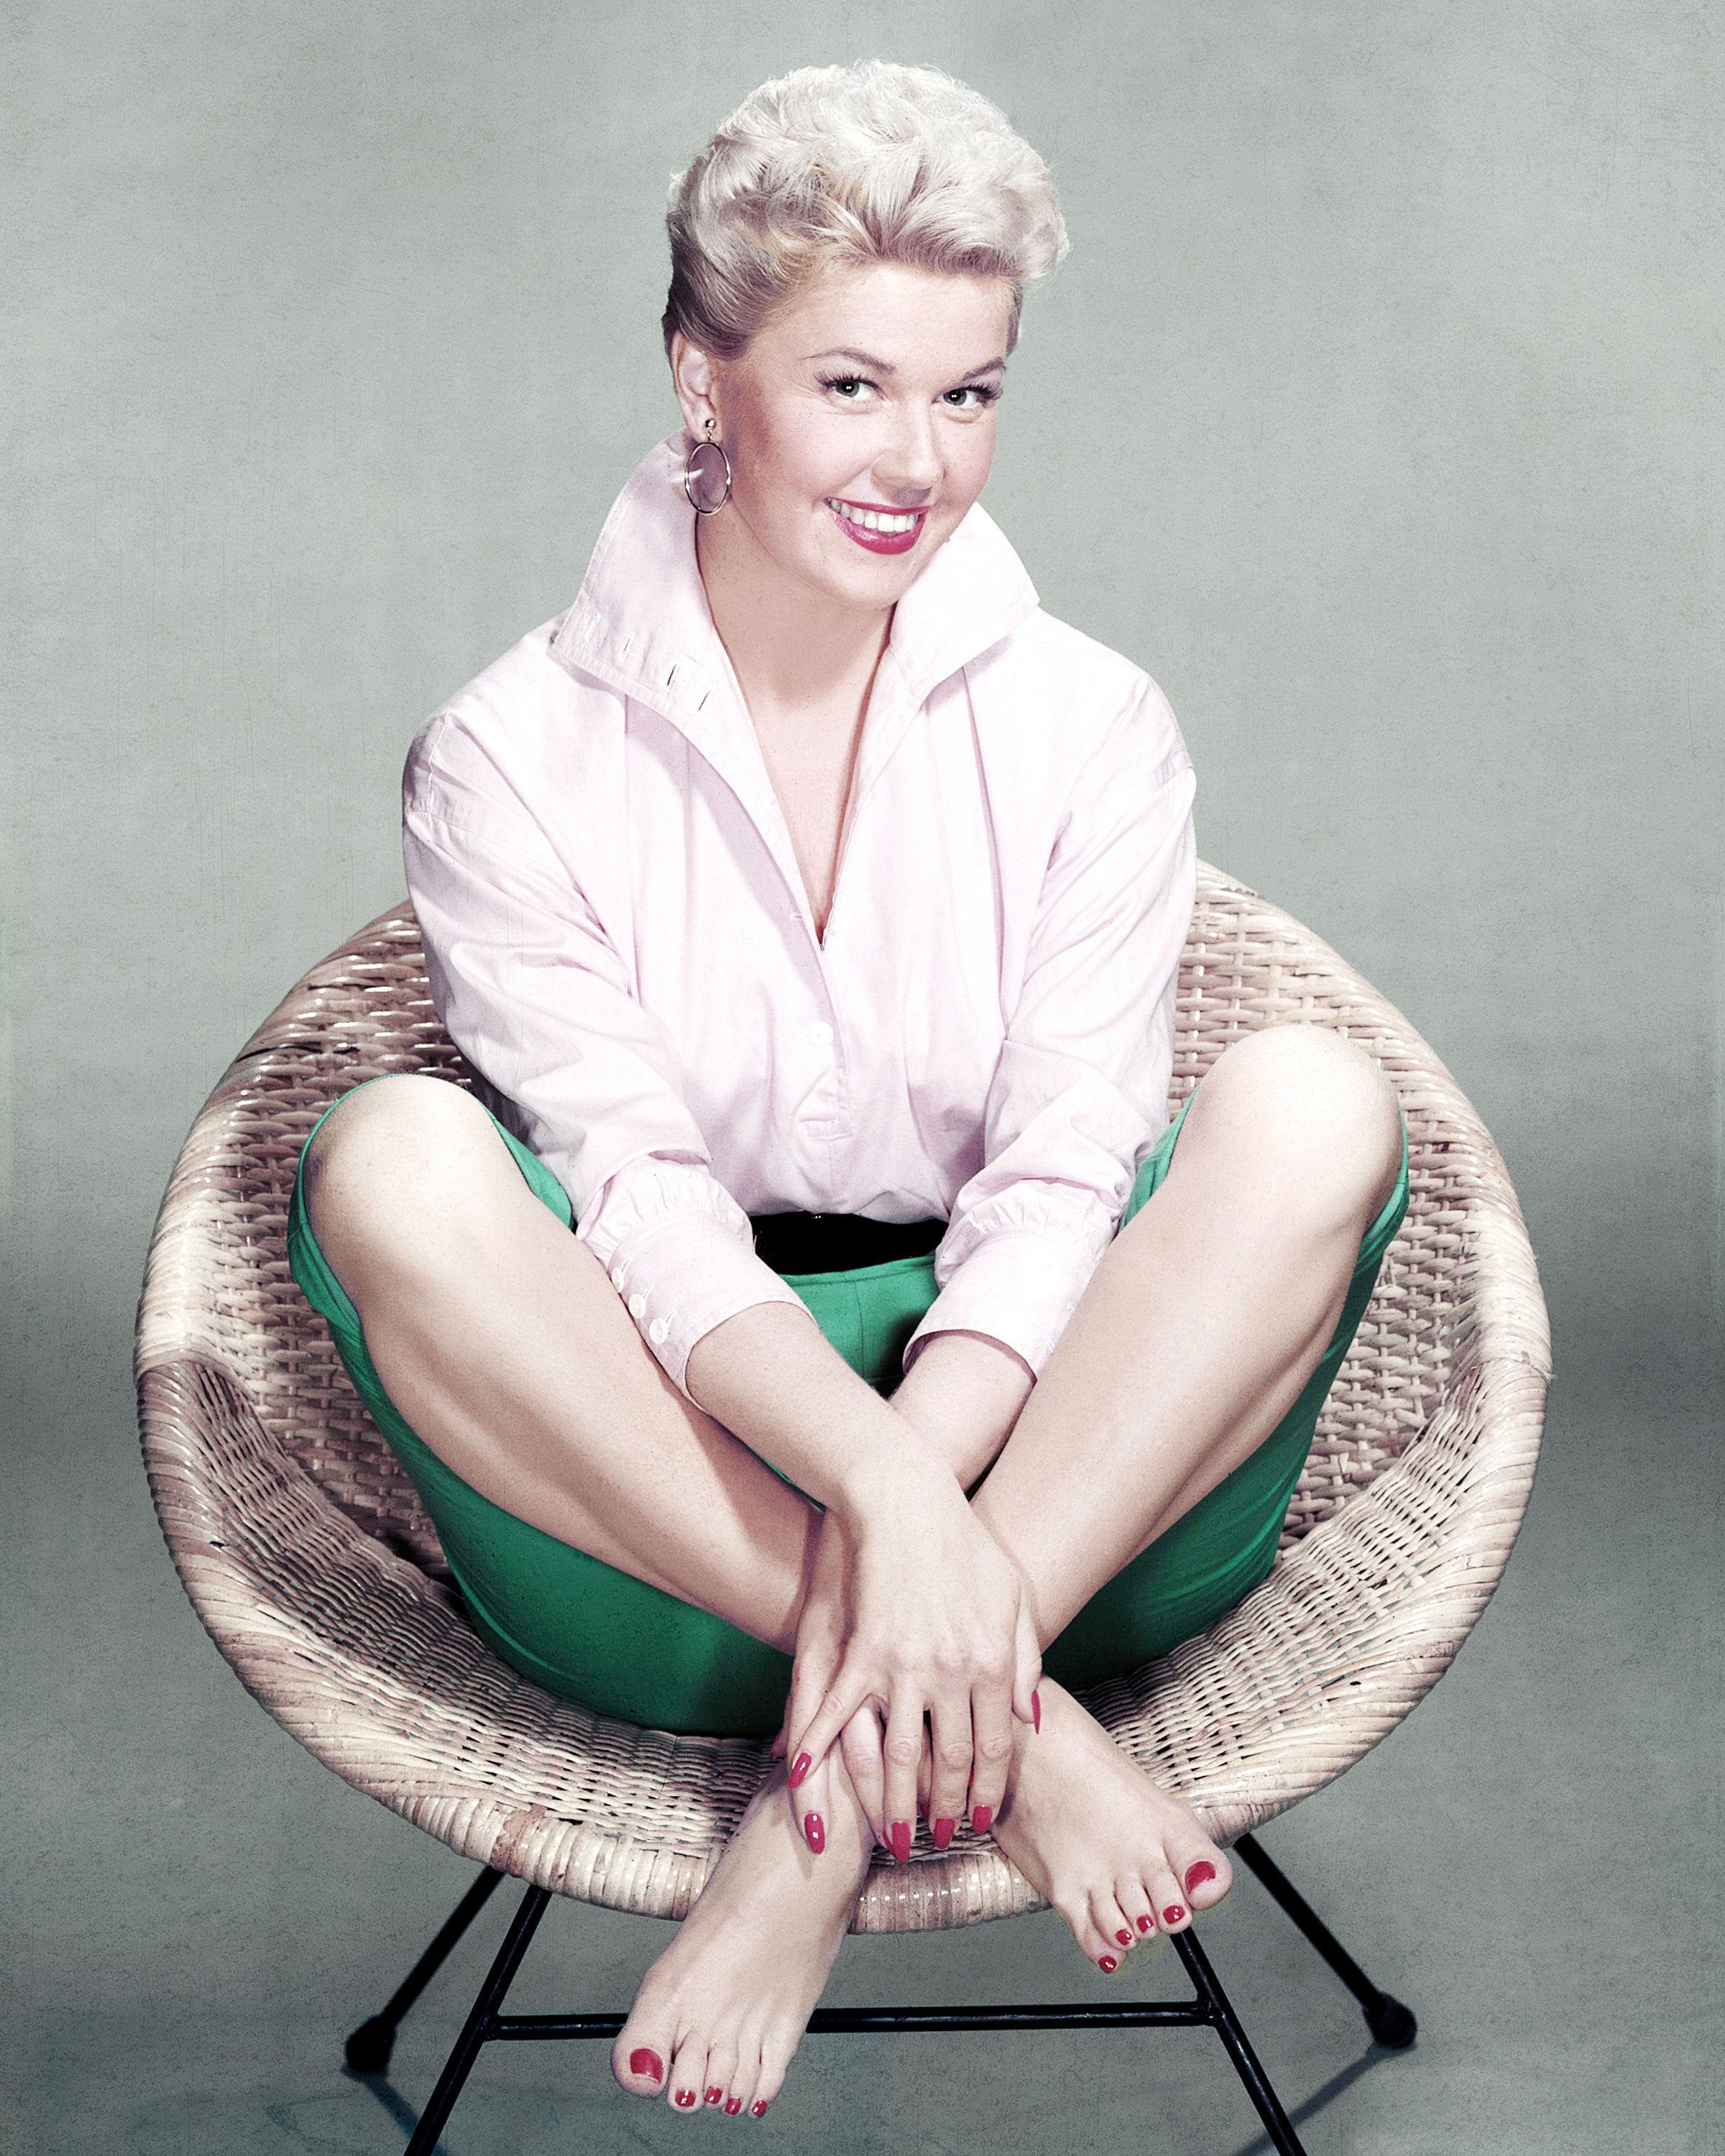 Doris Day, Hollywood Actress and Singer, Dead at 97